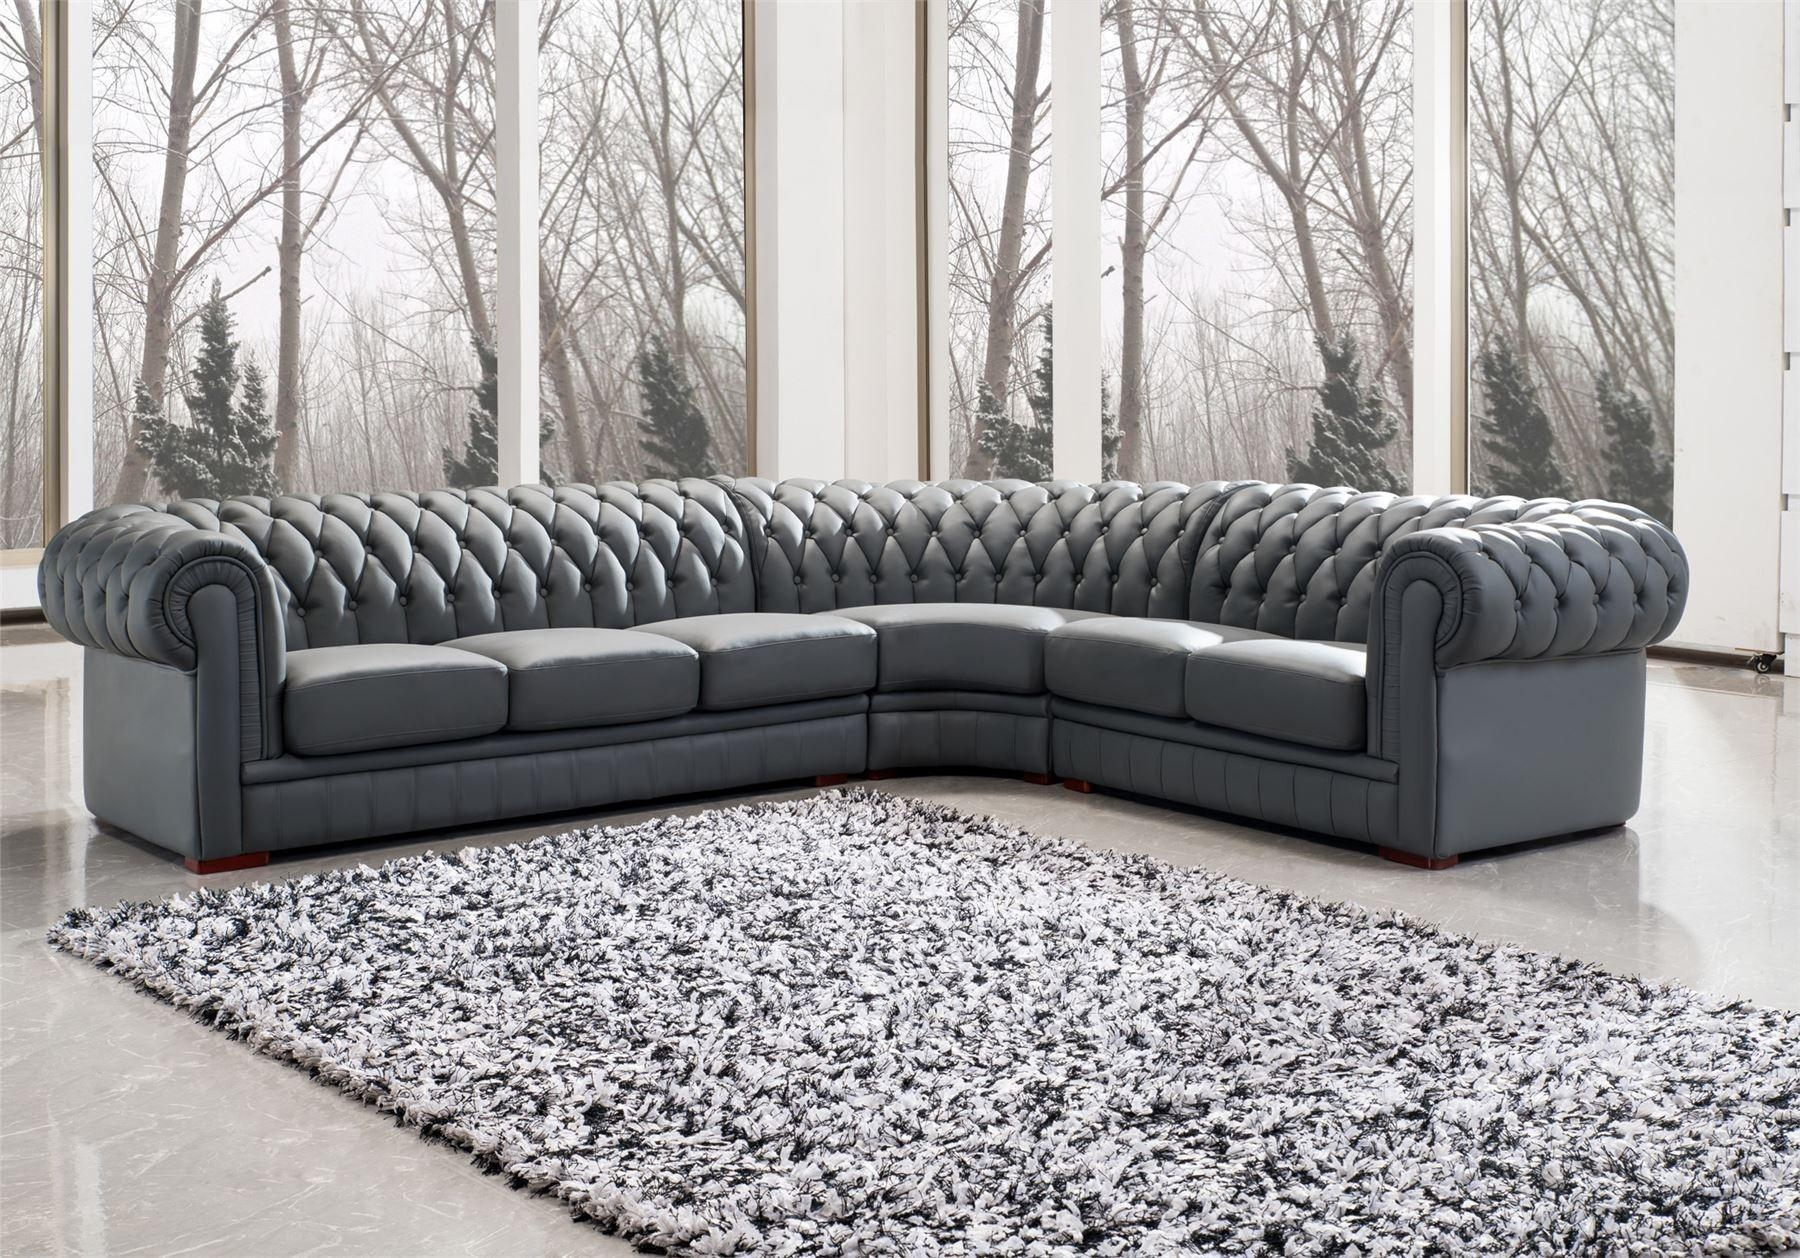 L Shape Gray Leather Sectional Sofa With Back And Arm Rest Placed Inside Gray Leather Sectional Sofas (View 14 of 21)